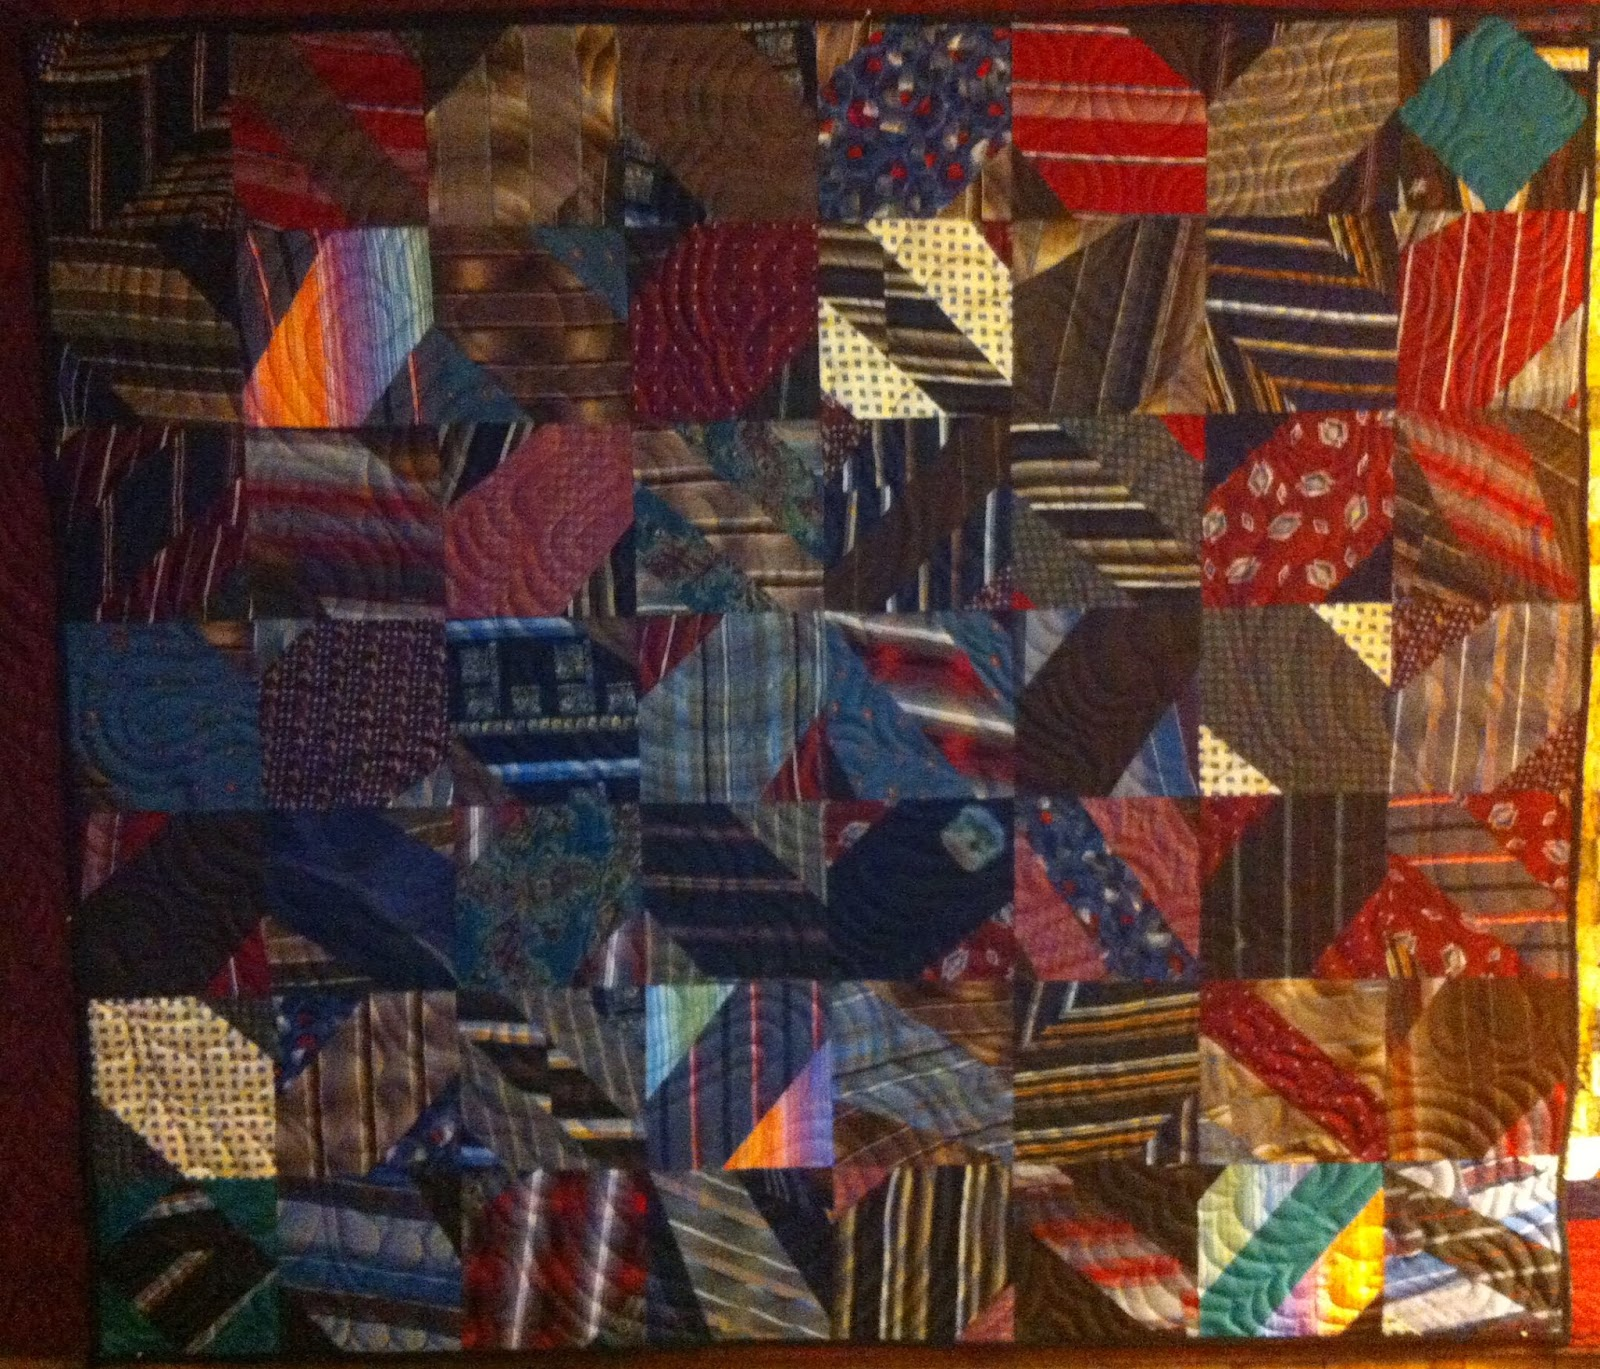 Katie's Quilts and Crafts: Quilt made of Silk Neck Ties : quilt made of ties - Adamdwight.com